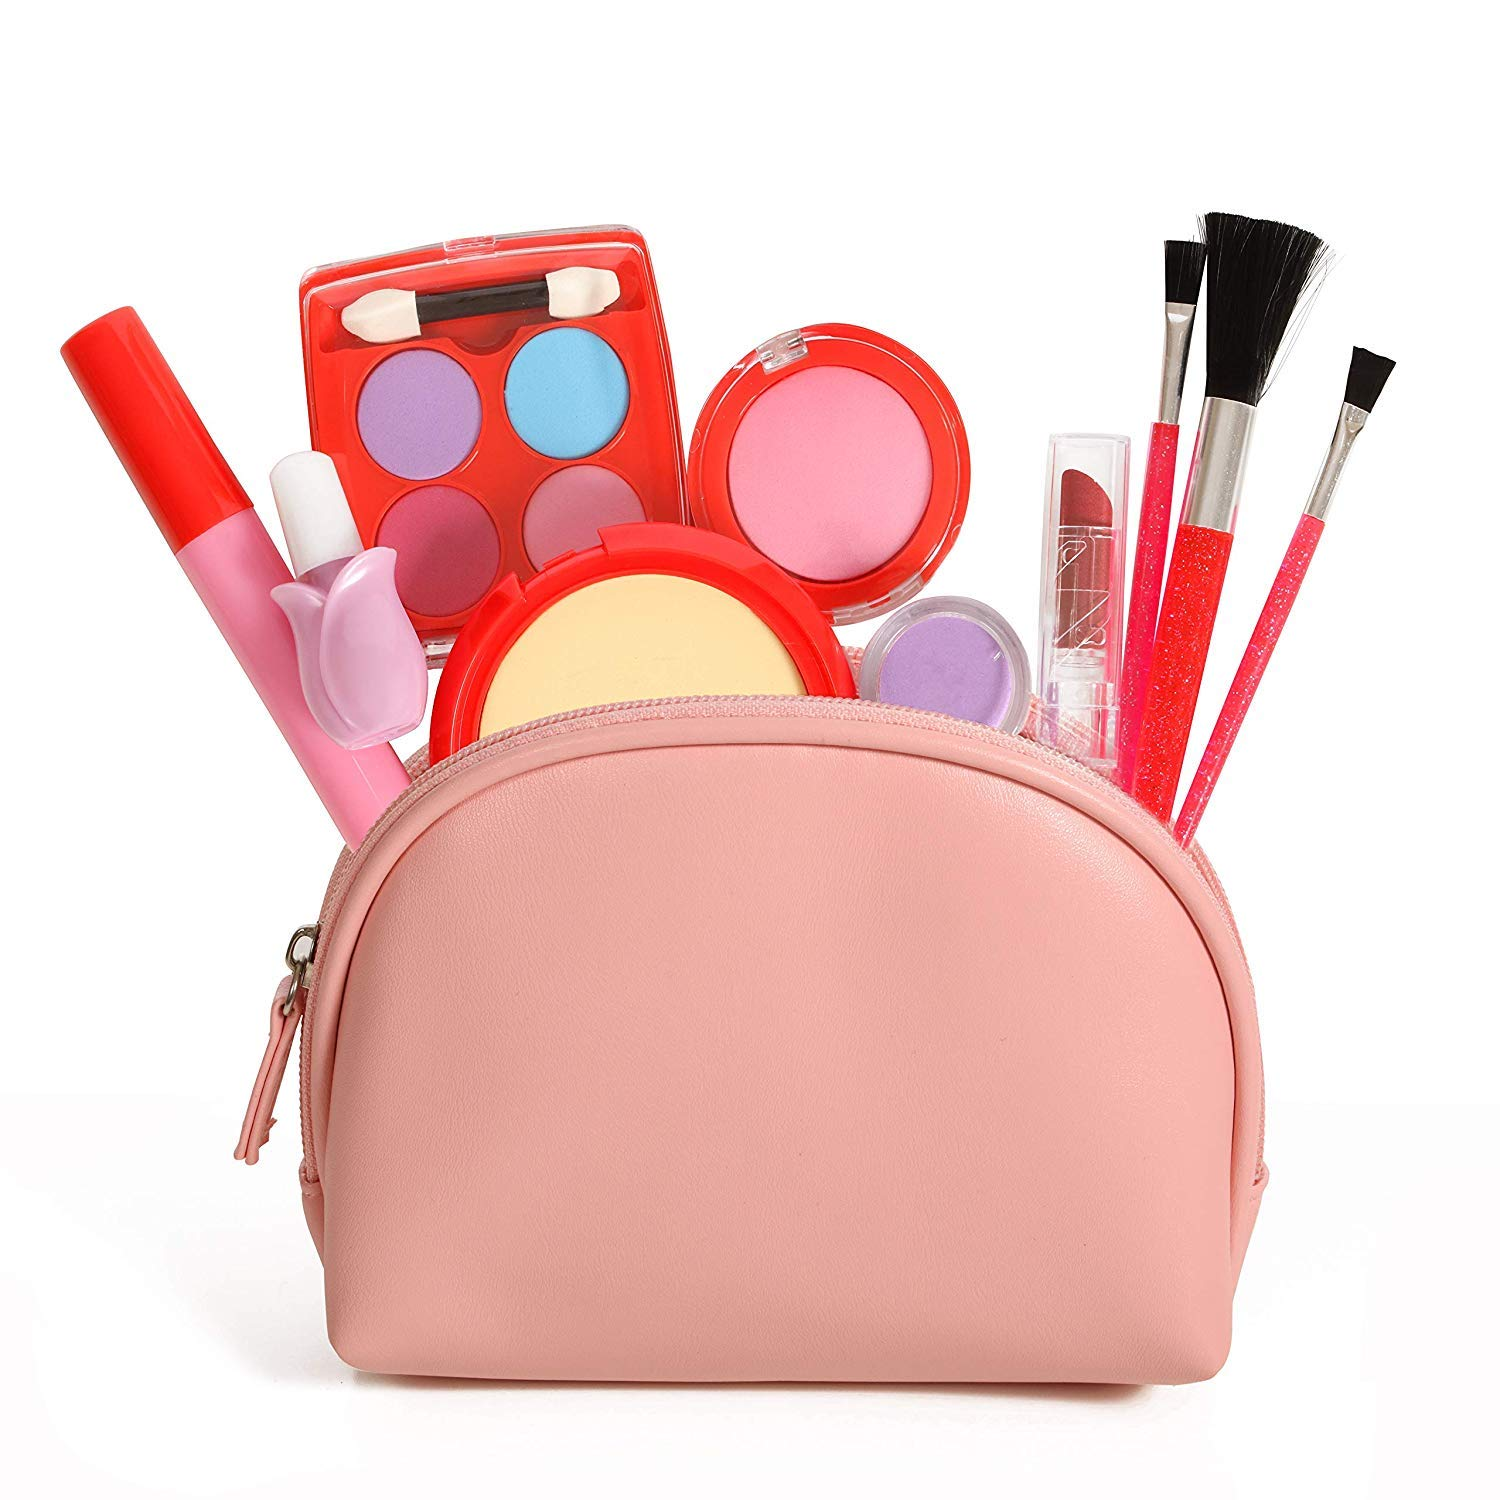 Pretend Makeup Kit, 11 Piece Set Leather Look Bag and Mirror by Dress 2 Play